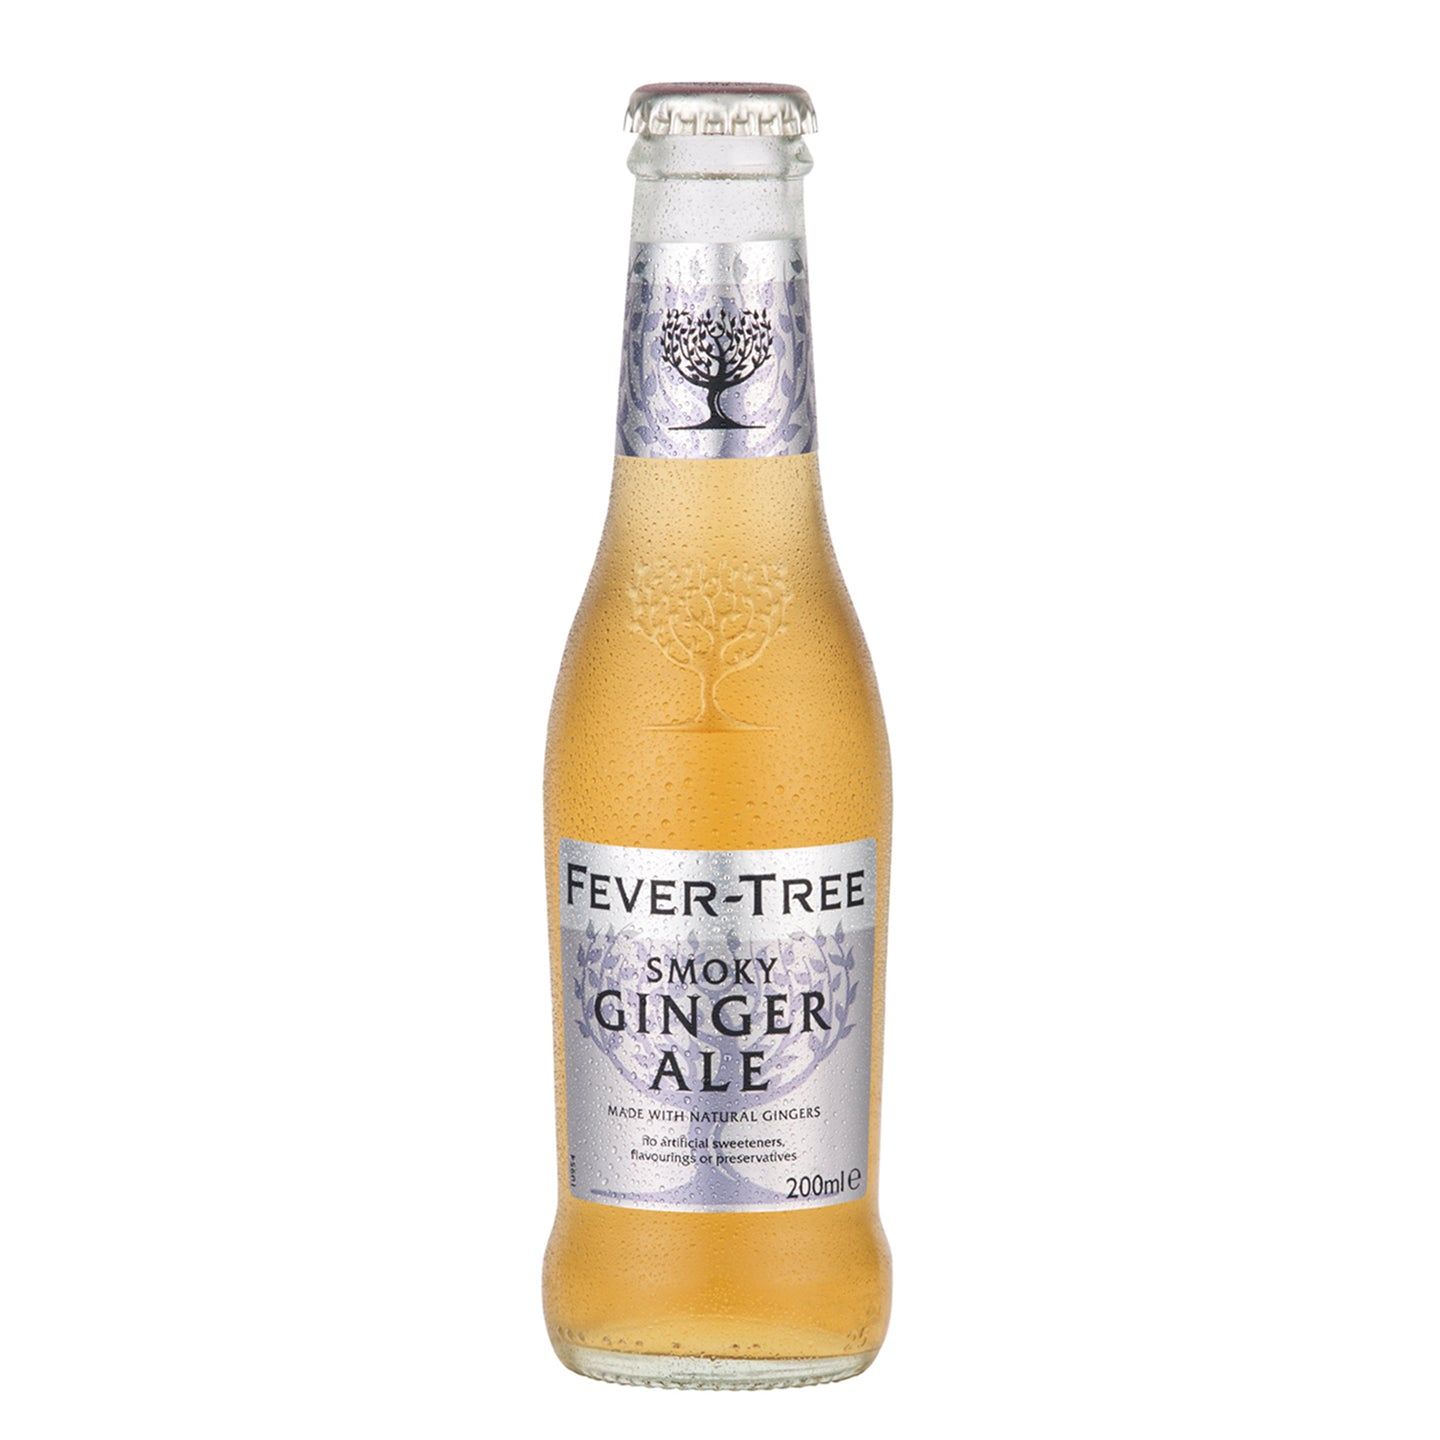 Fever-Tree: Smoky Ginger Ale 200 ml